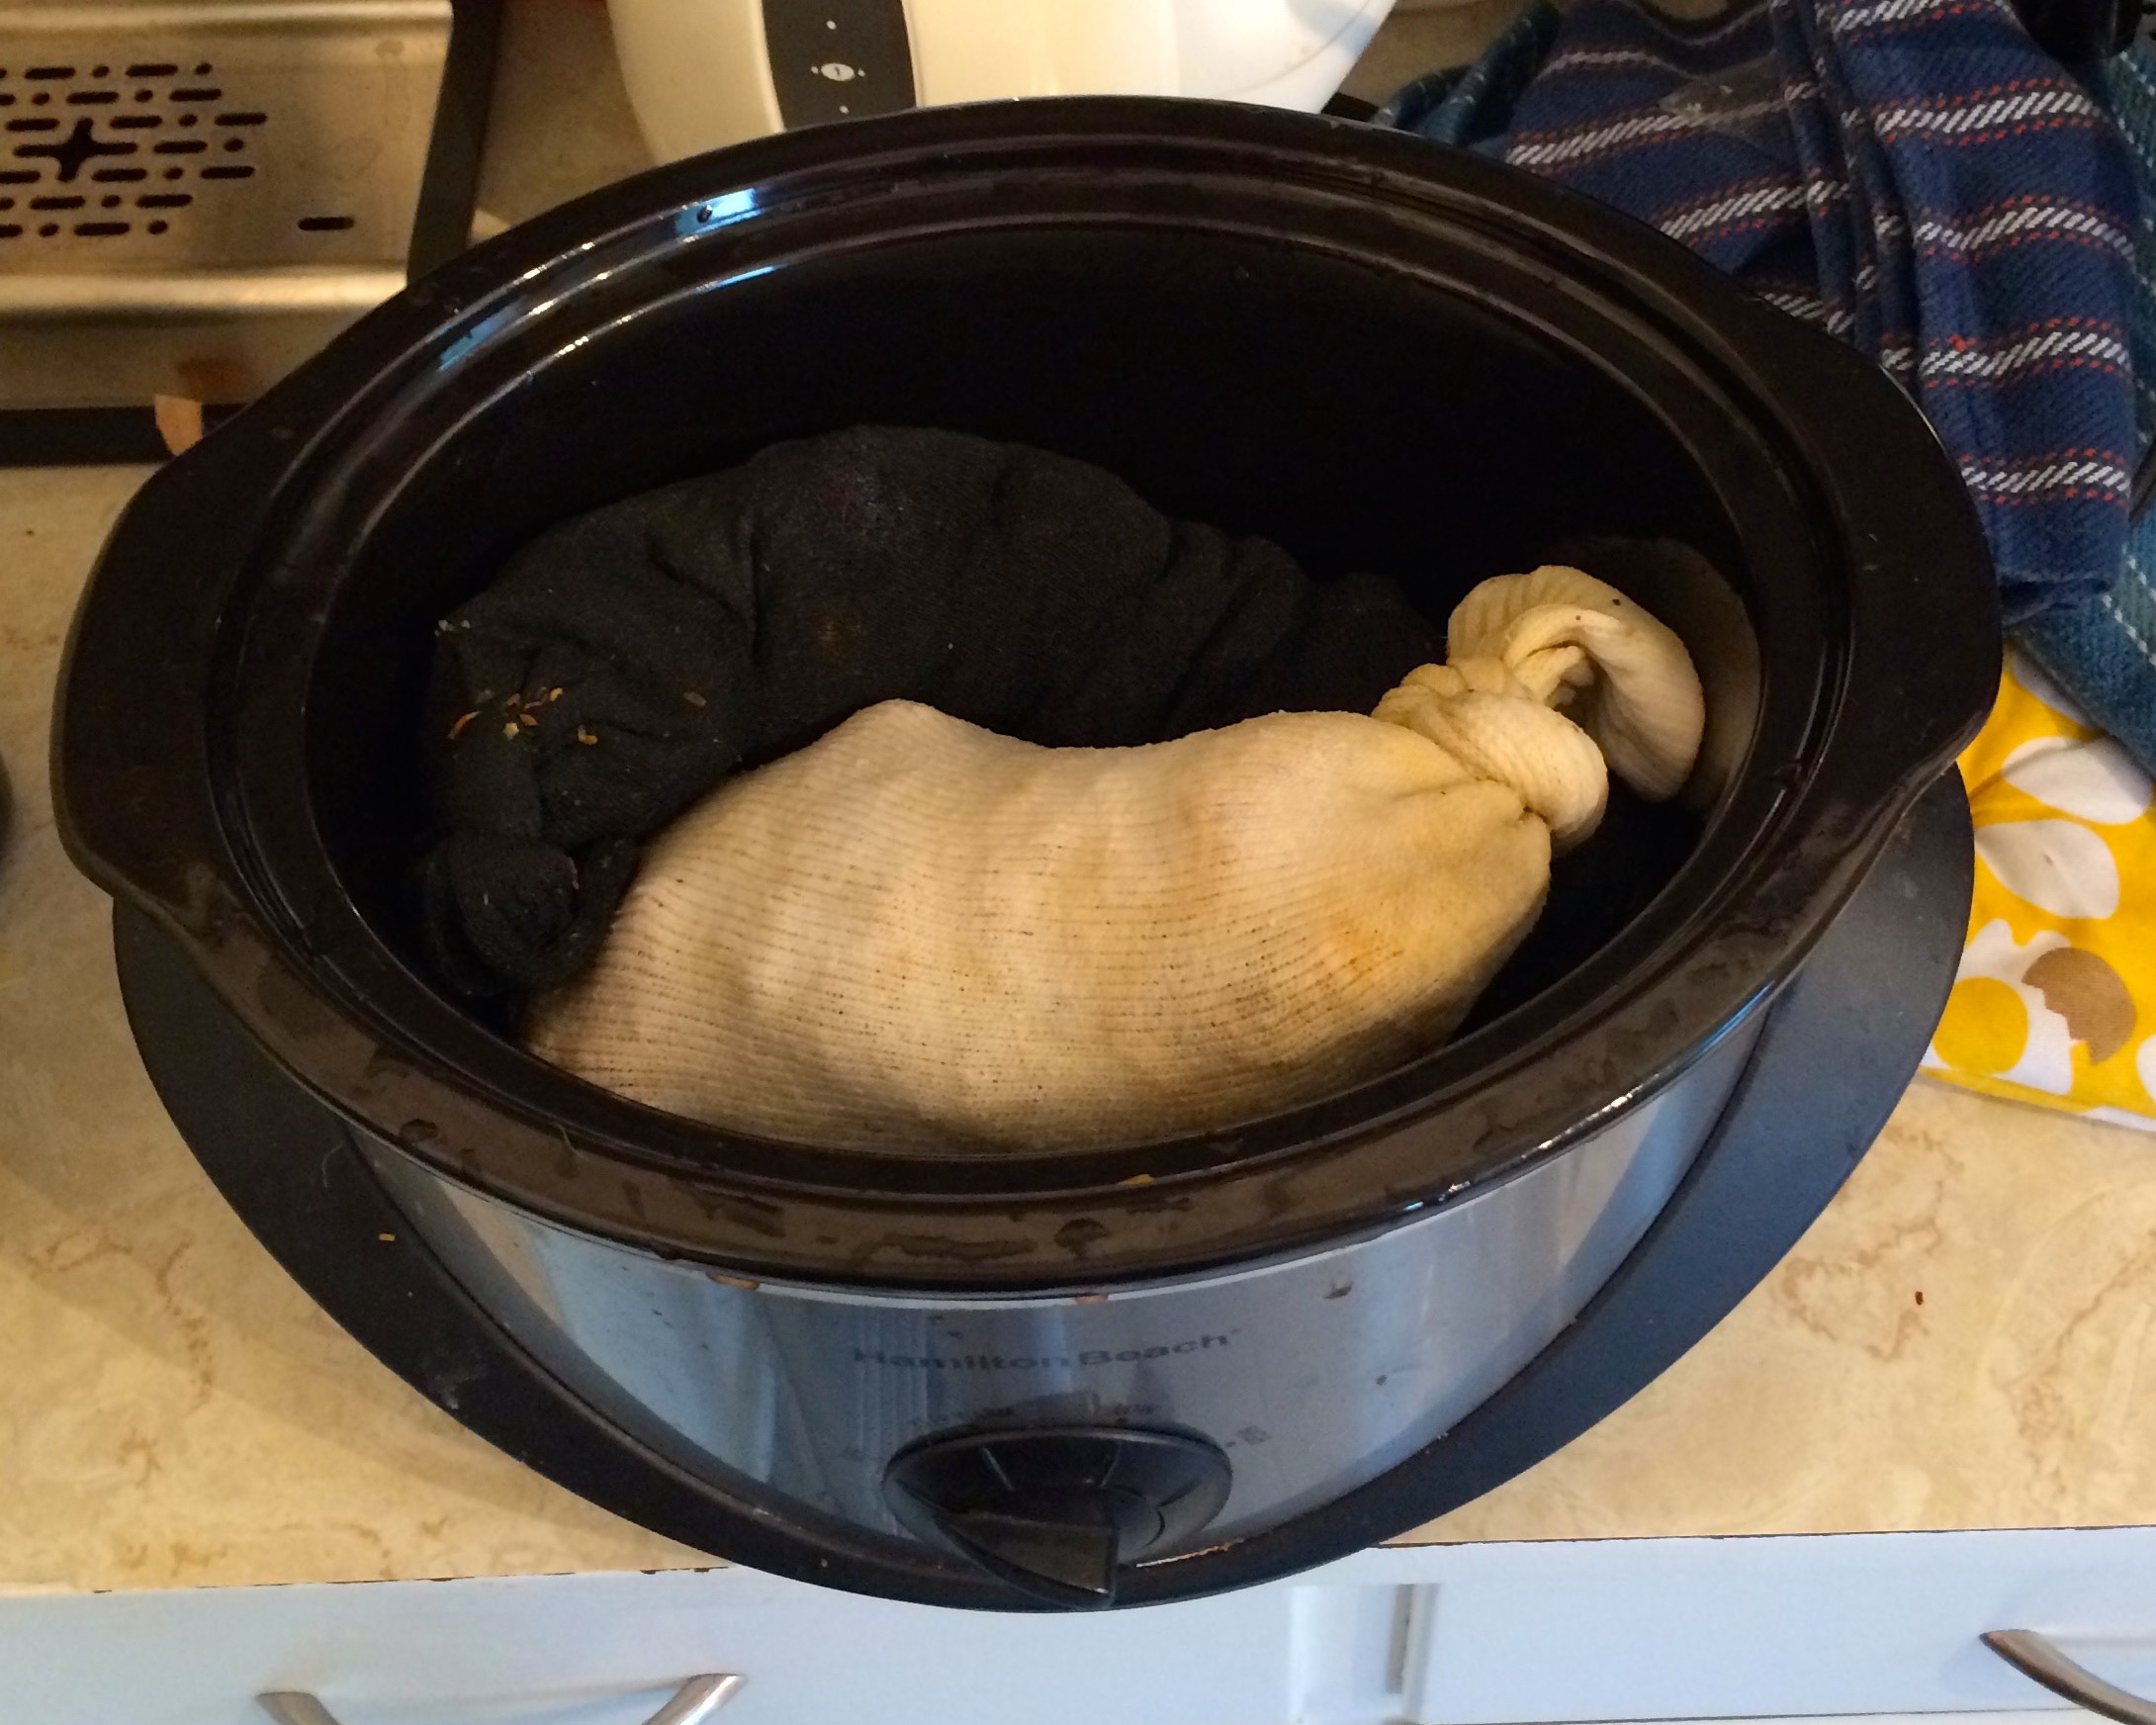 Extracting wax in socks in a crock pot